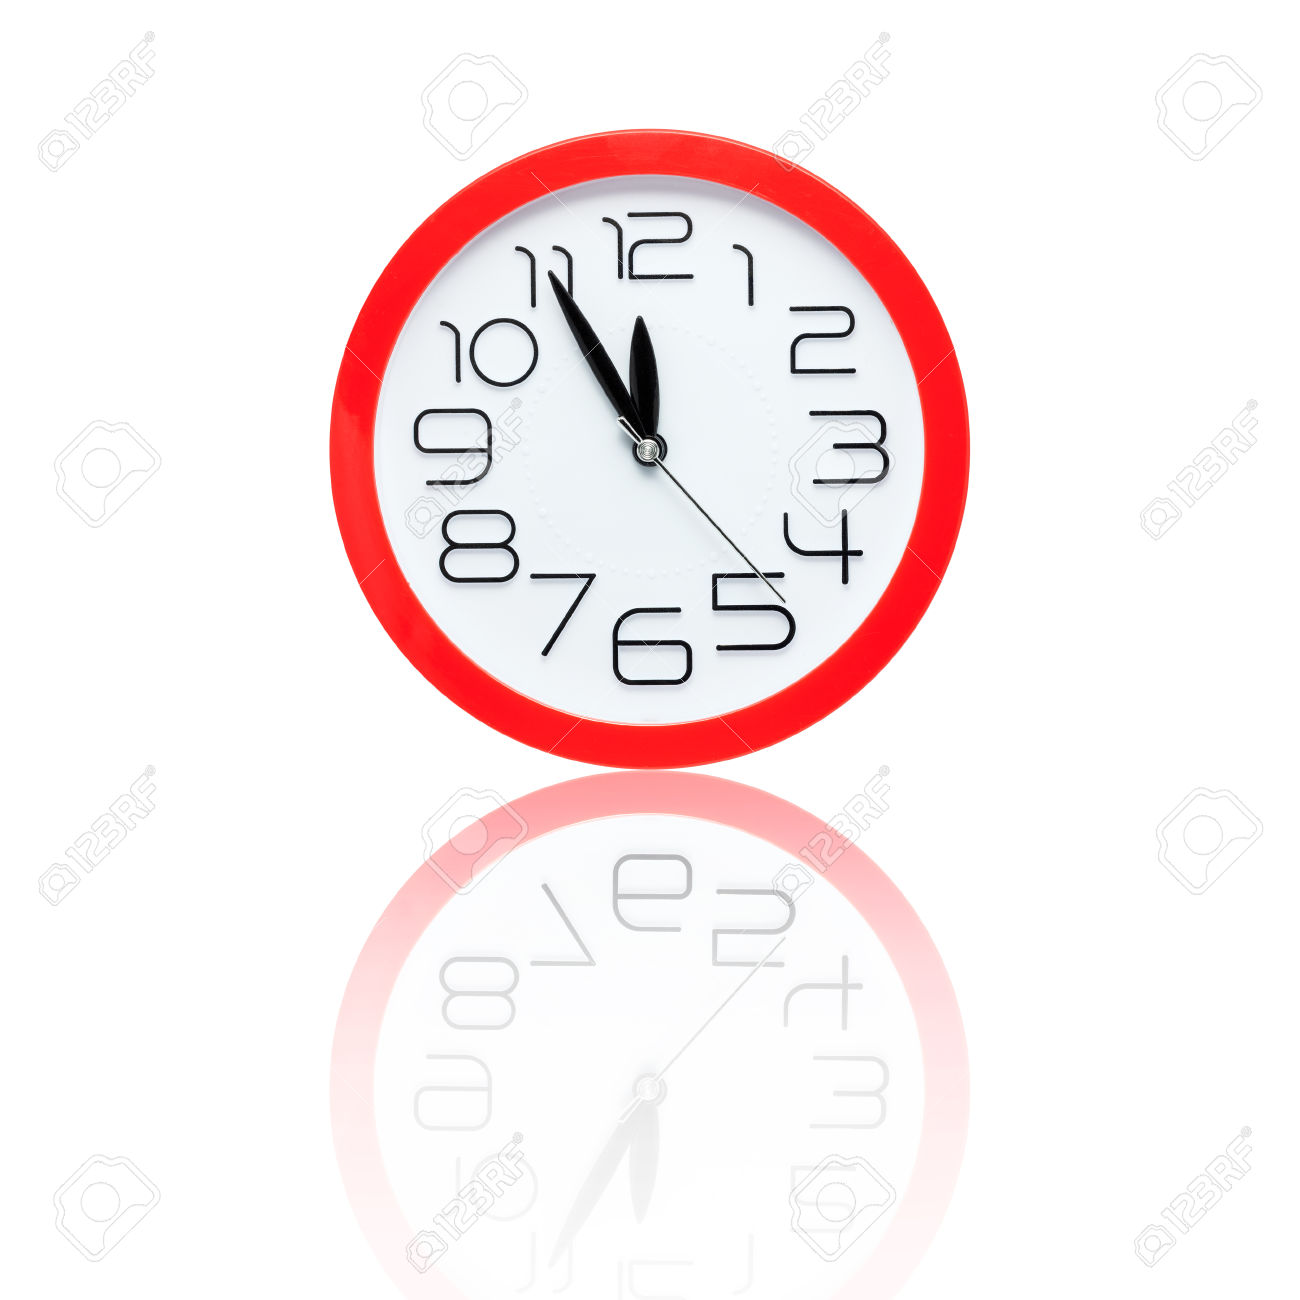 Red Alarm Clock Showing Five Minutes To Midnight With Reflection.